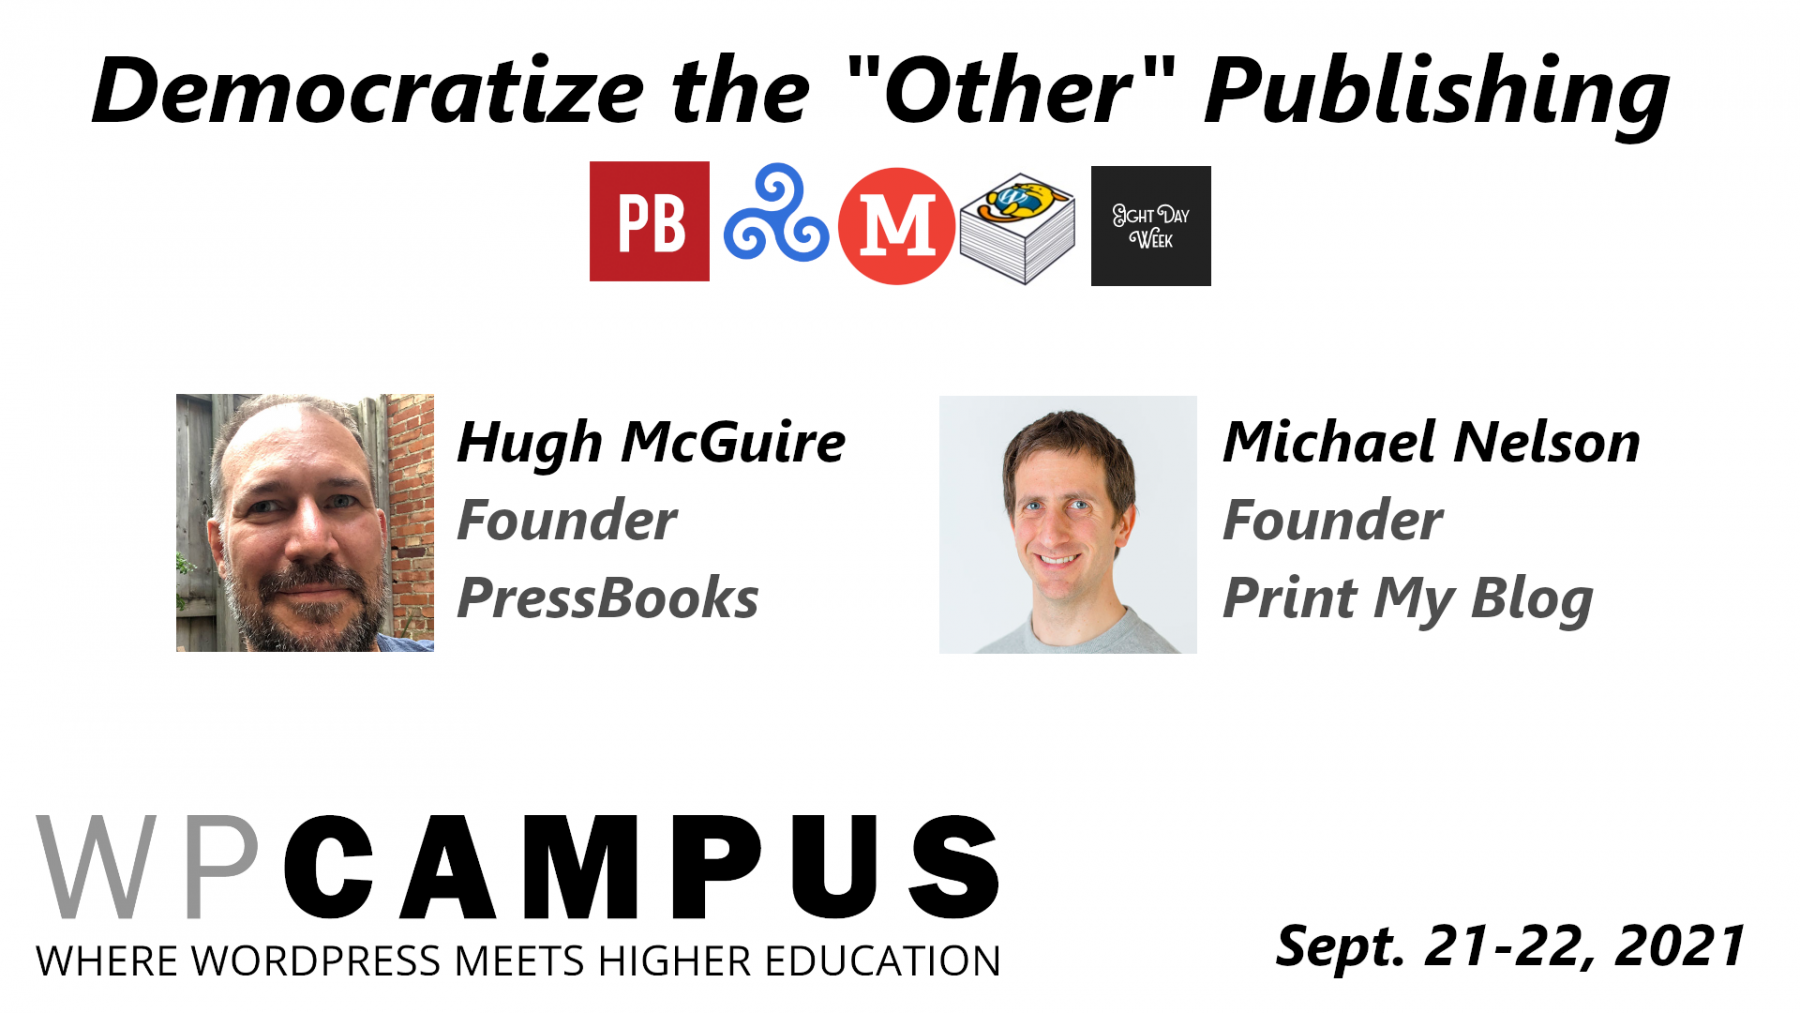 Democratize the Other Publishing, by Hugh McGuire (Founder of Pressbooks) and Michael Nelson (Founder of Print My Blog) at WPCampus (Where WordPress Meets Higher Education) on September 21-22 2021